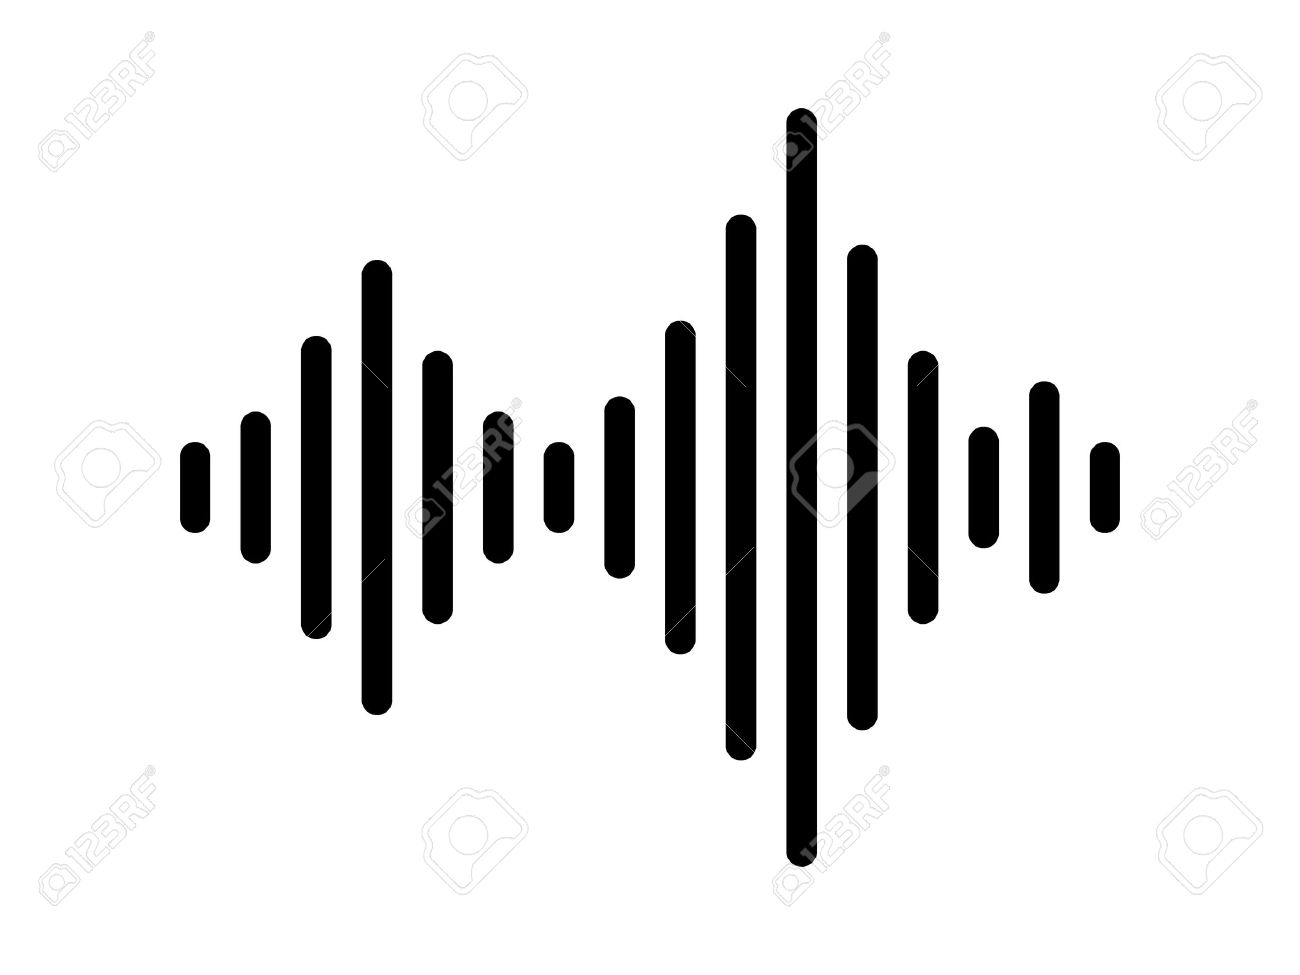 sound audio wave or soundwave line art vector icon for music rh 123rf com sound wave vector png sound wave vector art